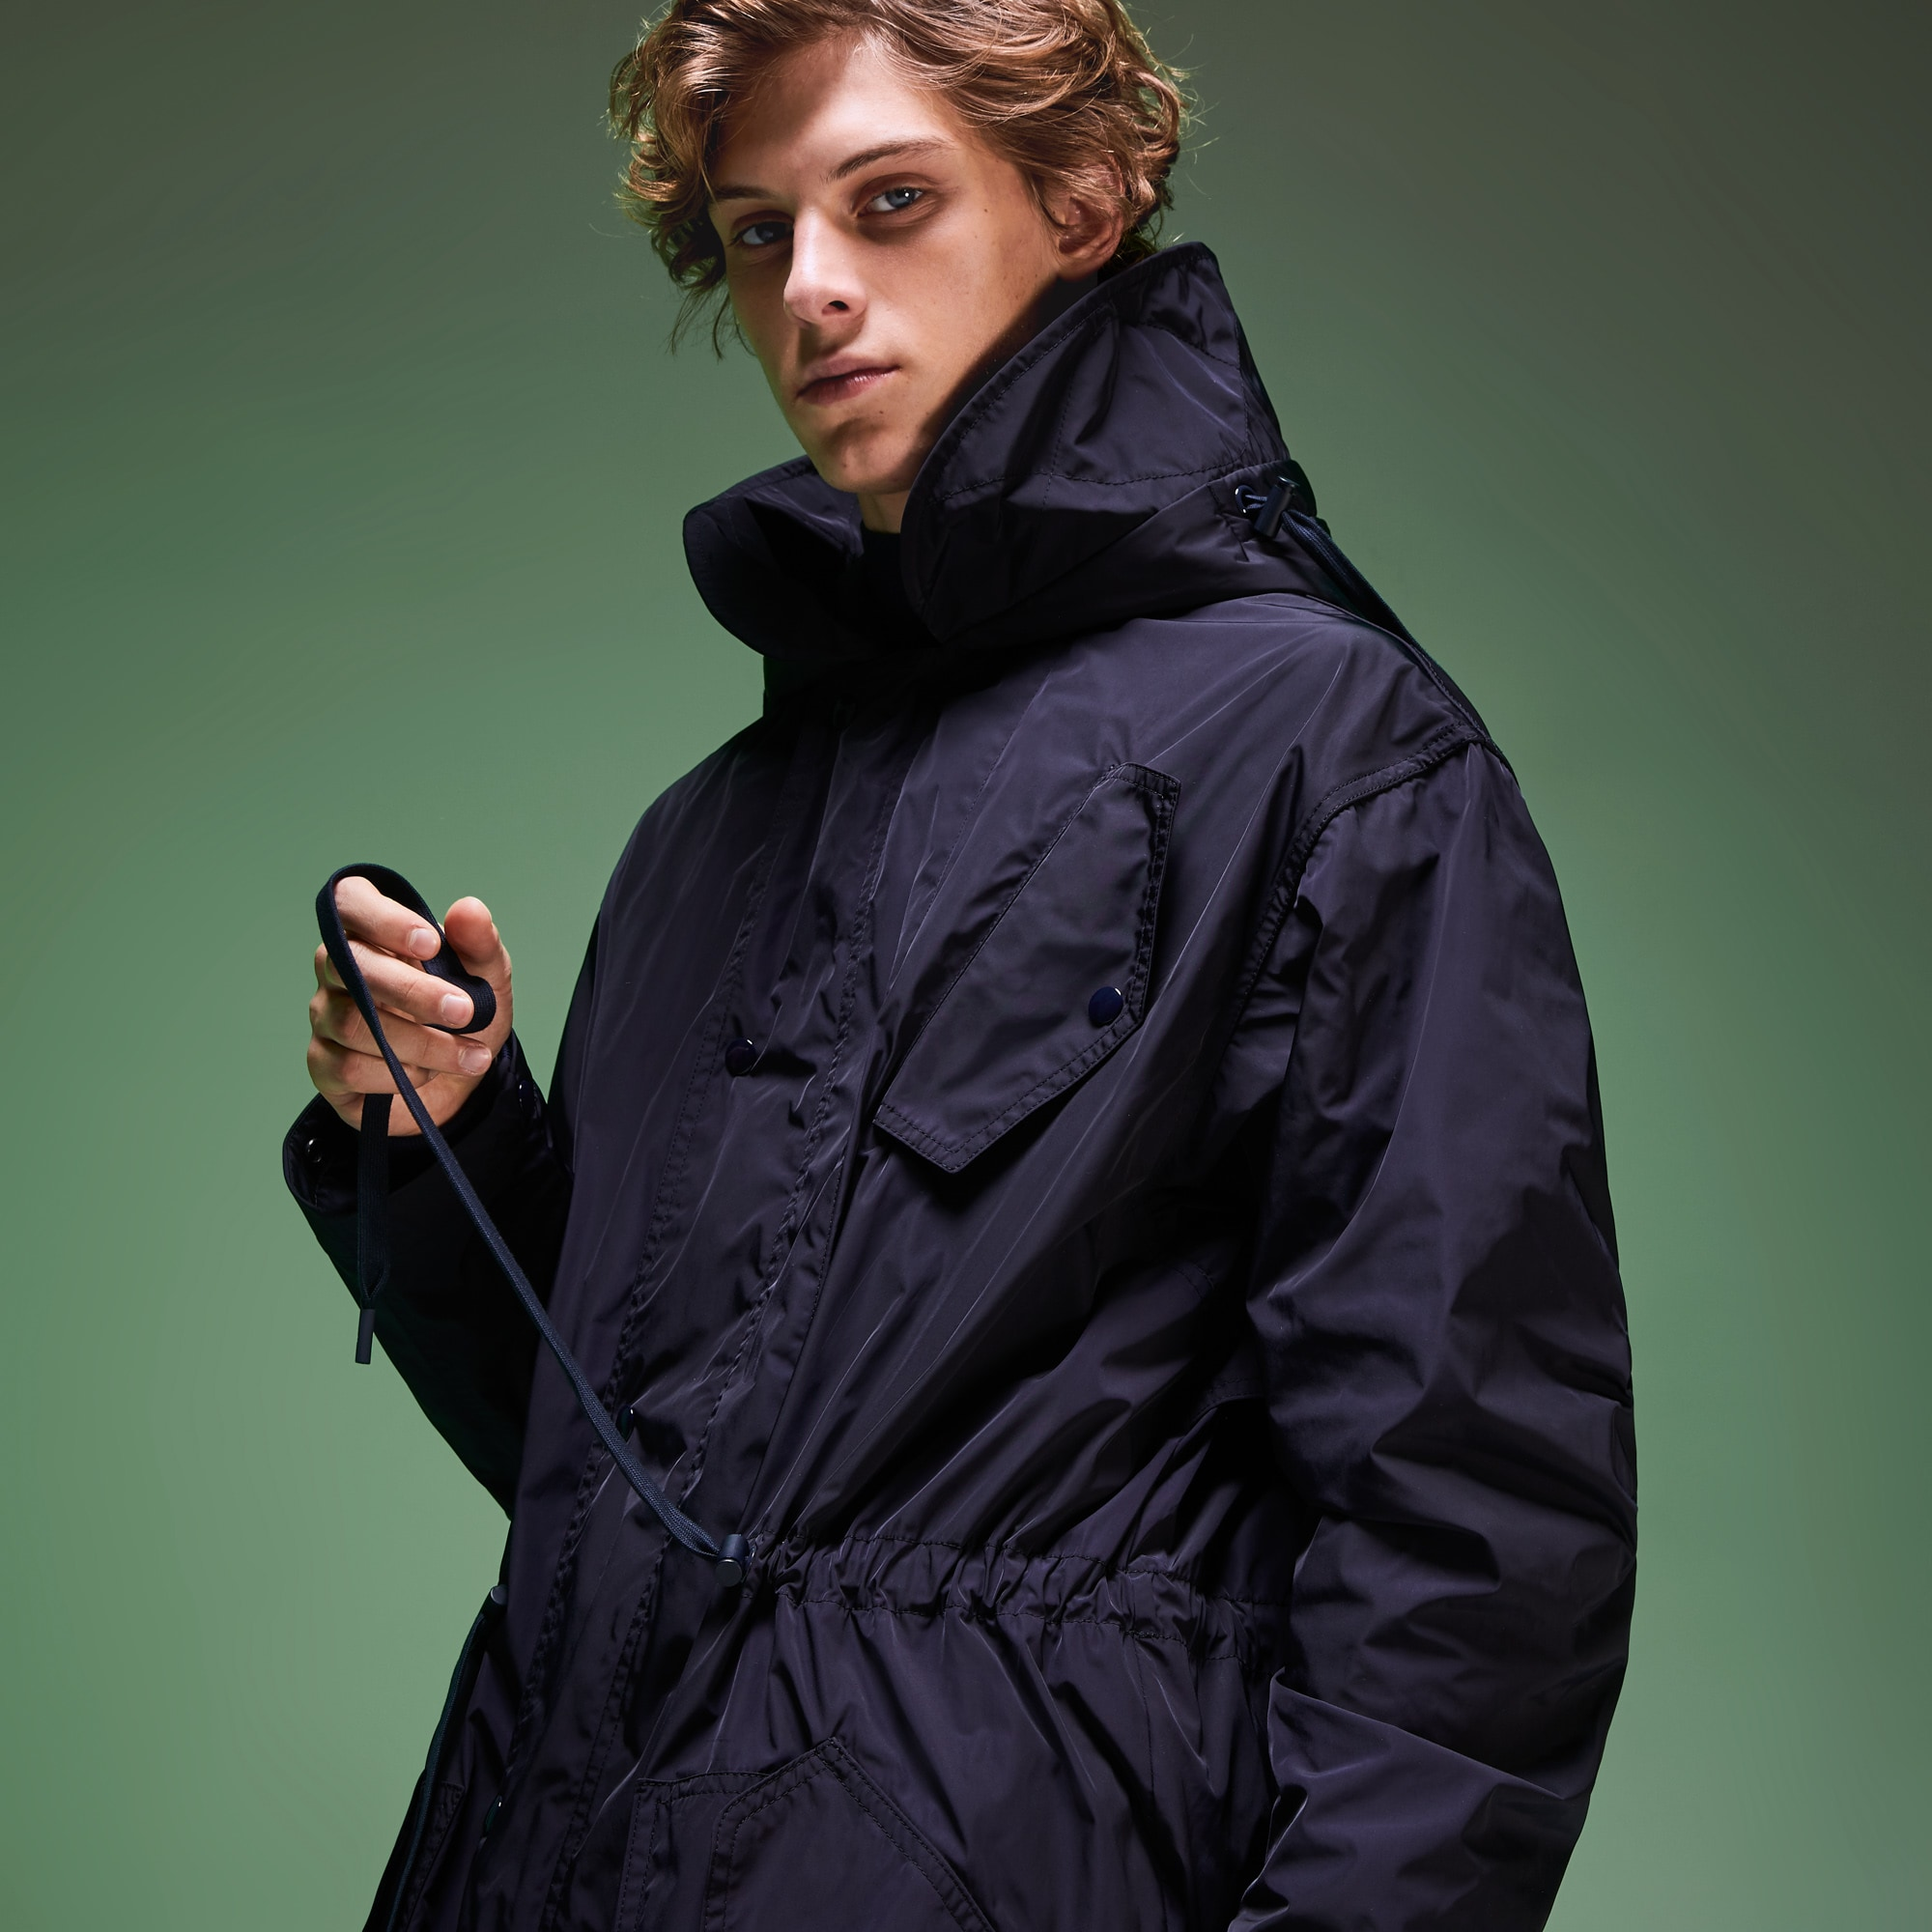 Unisex Fashion Show Solid Technical Coat